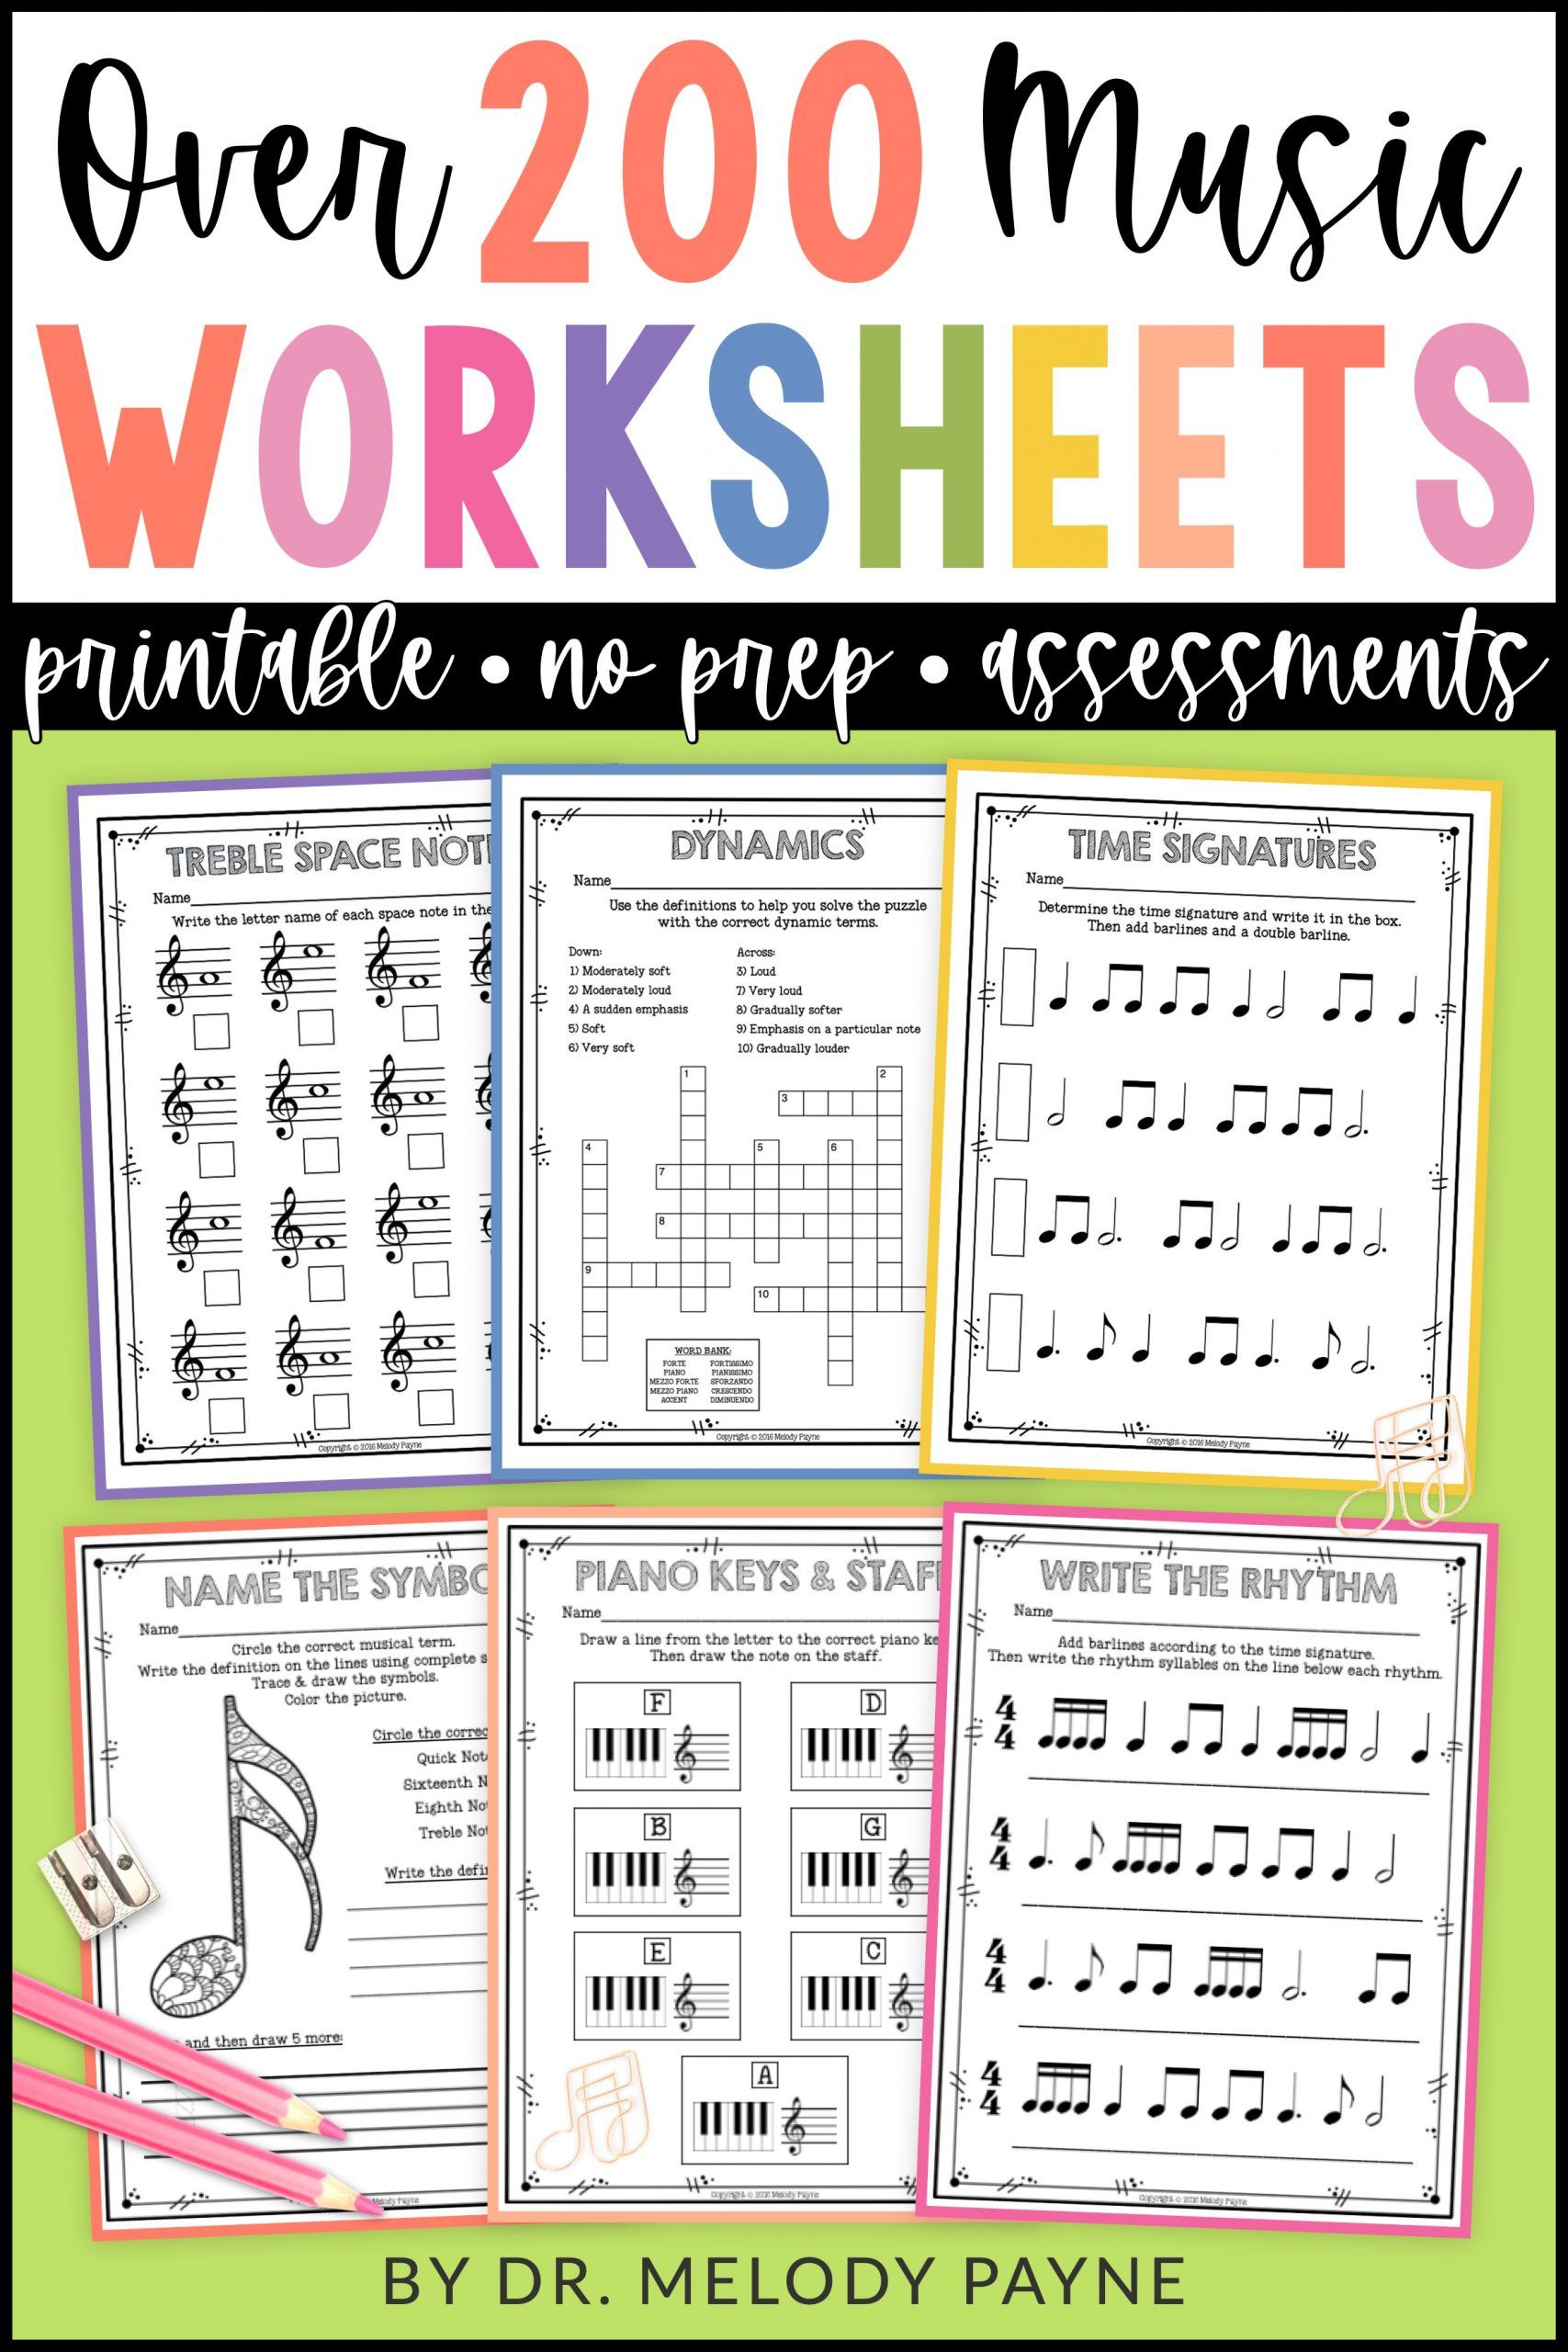 Music Theory Worksheets Over 200 Print And Go No Frills No Prep Pages Melody Payne Music For A Lifetime In 2020 Music Theory Worksheets Music Worksheets Music Vocabulary